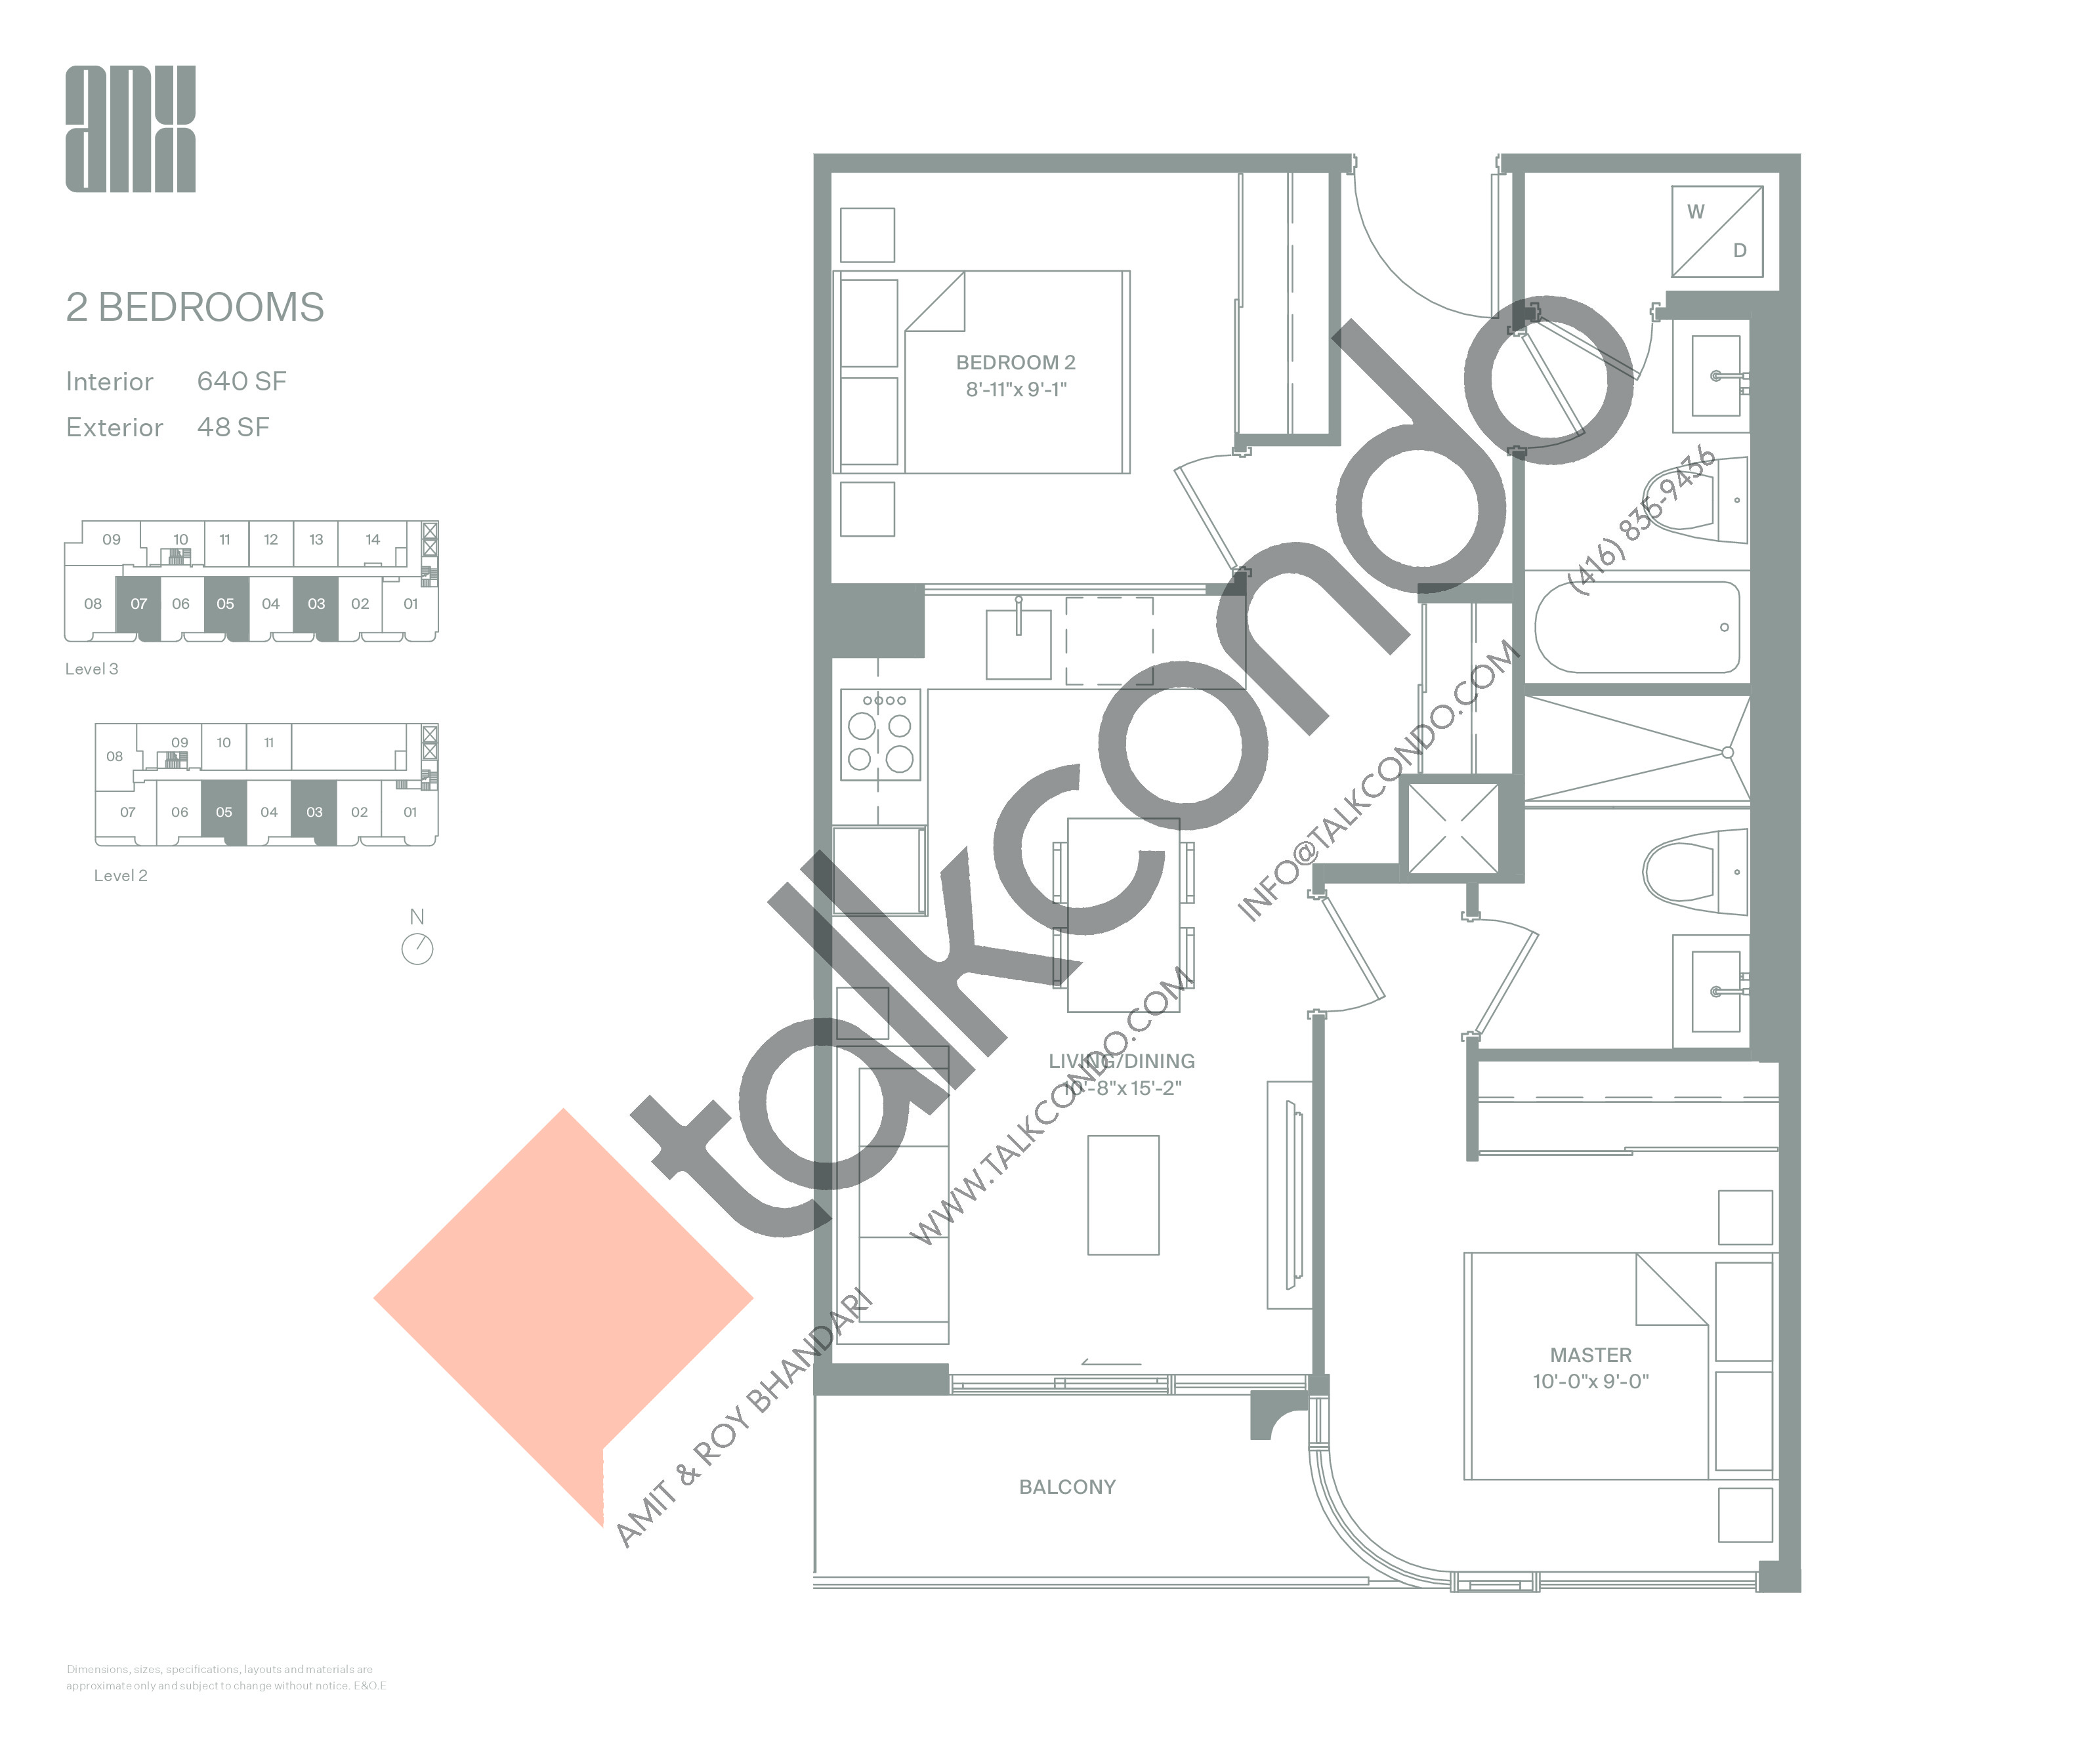 Suite 640 Option B Floor Plan at ANX Condos - 640 sq.ft